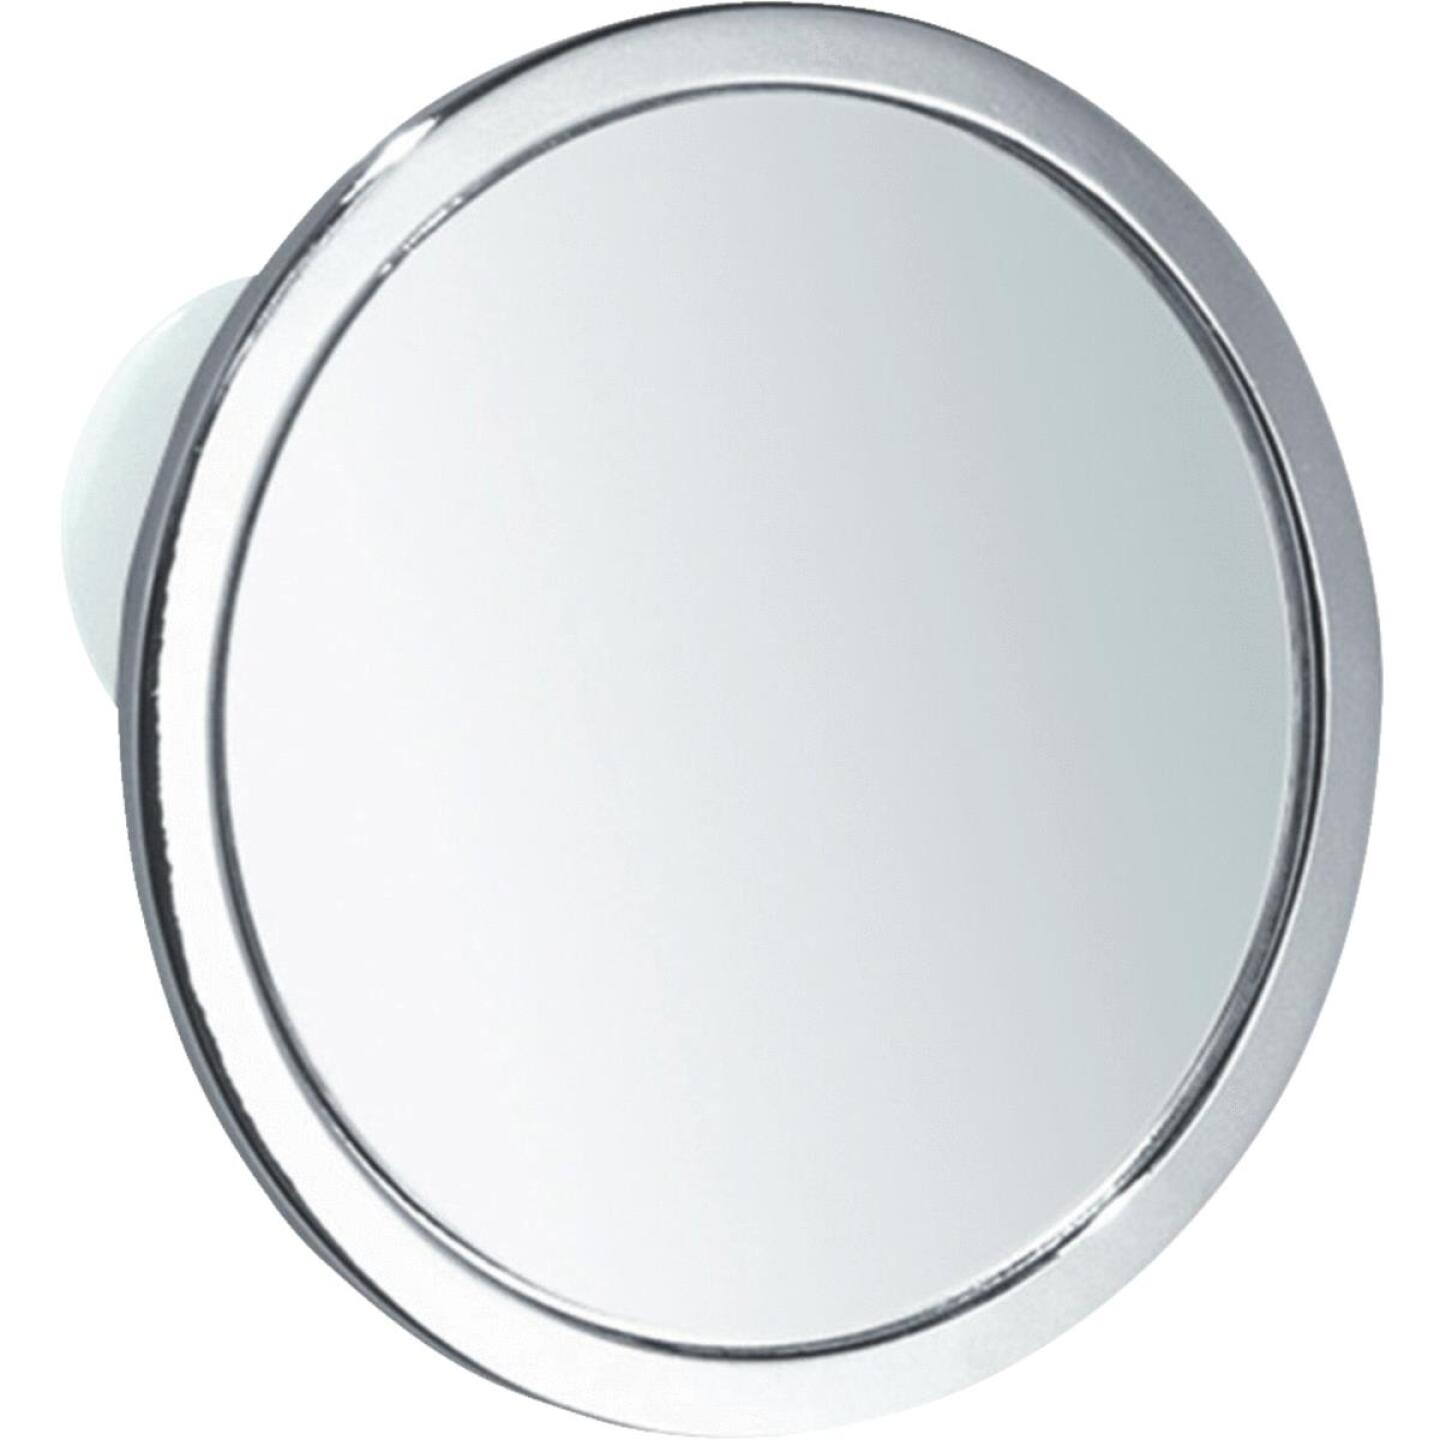 InterDesign Zia 5.75 In. Dia. Fog-Free Mirror Image 2